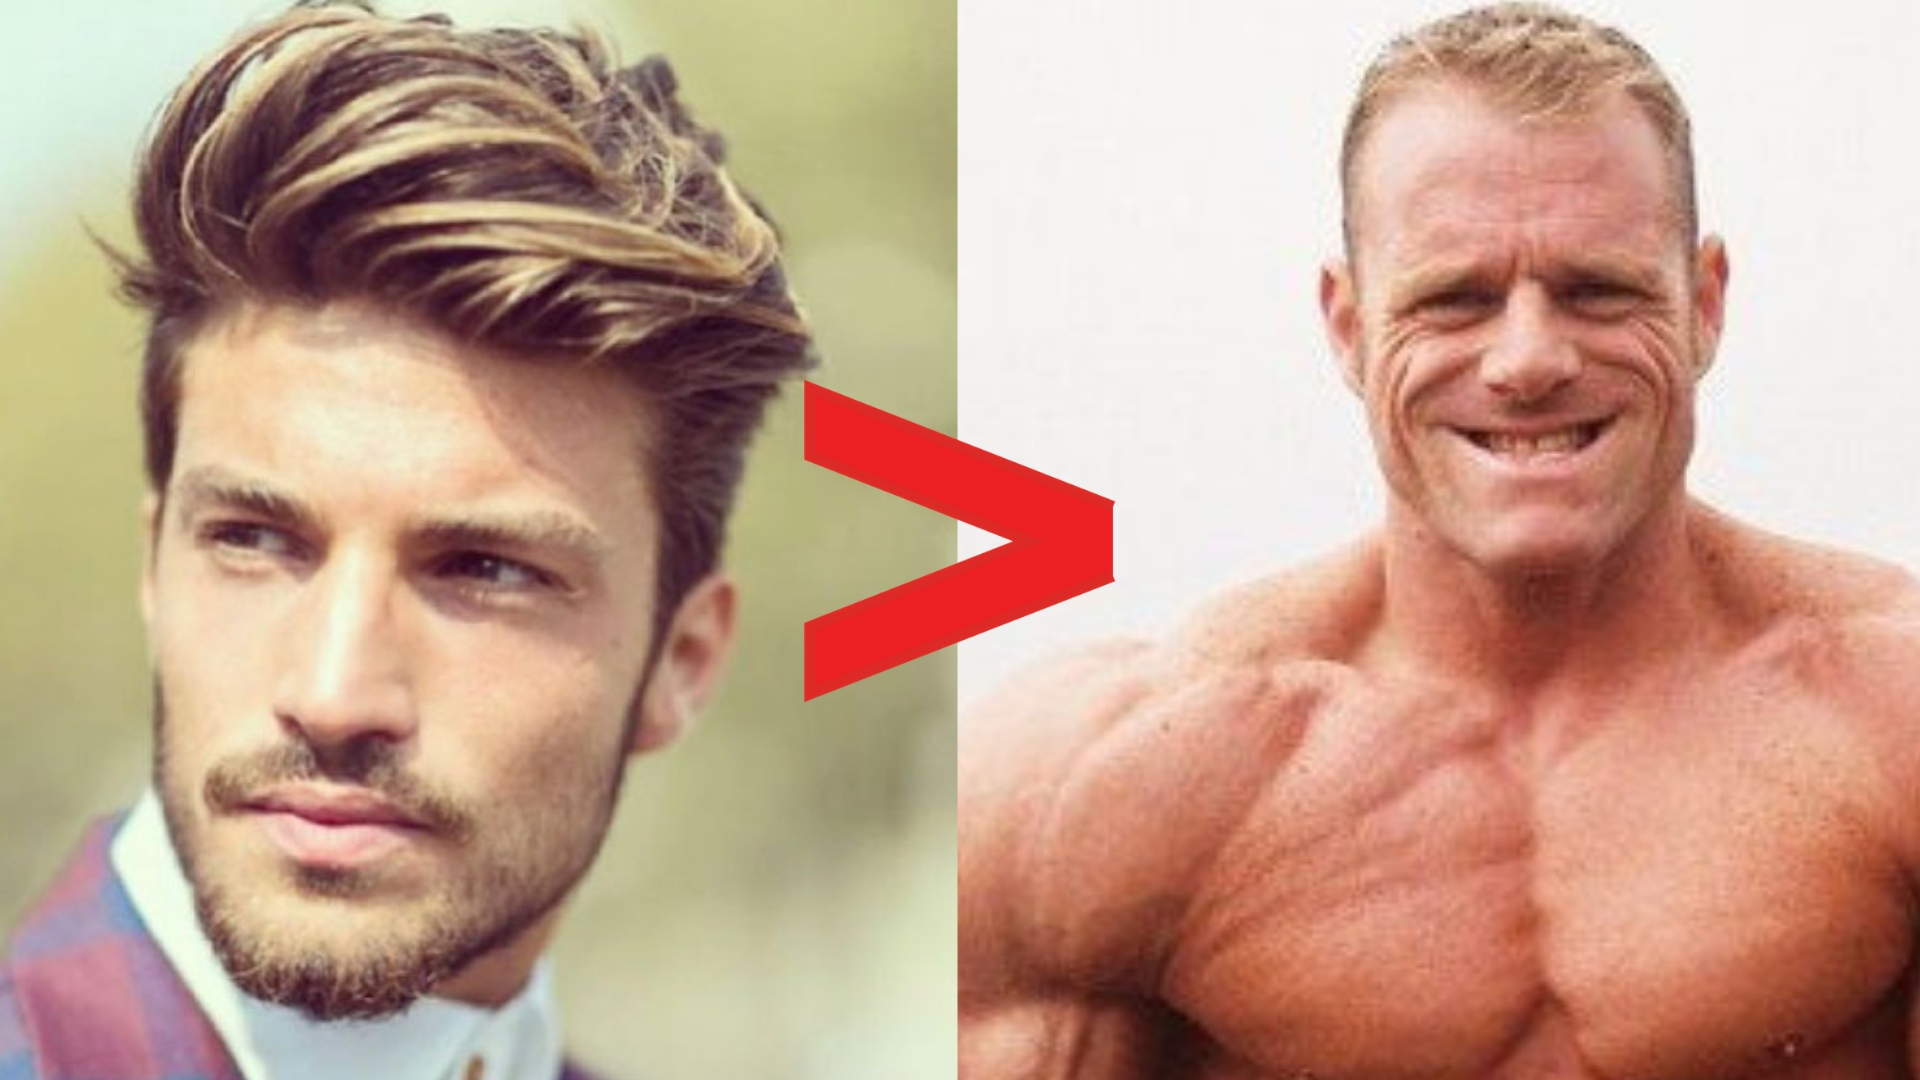 Keeping Your Hair Vs Gaining More Muscle With Androgenic